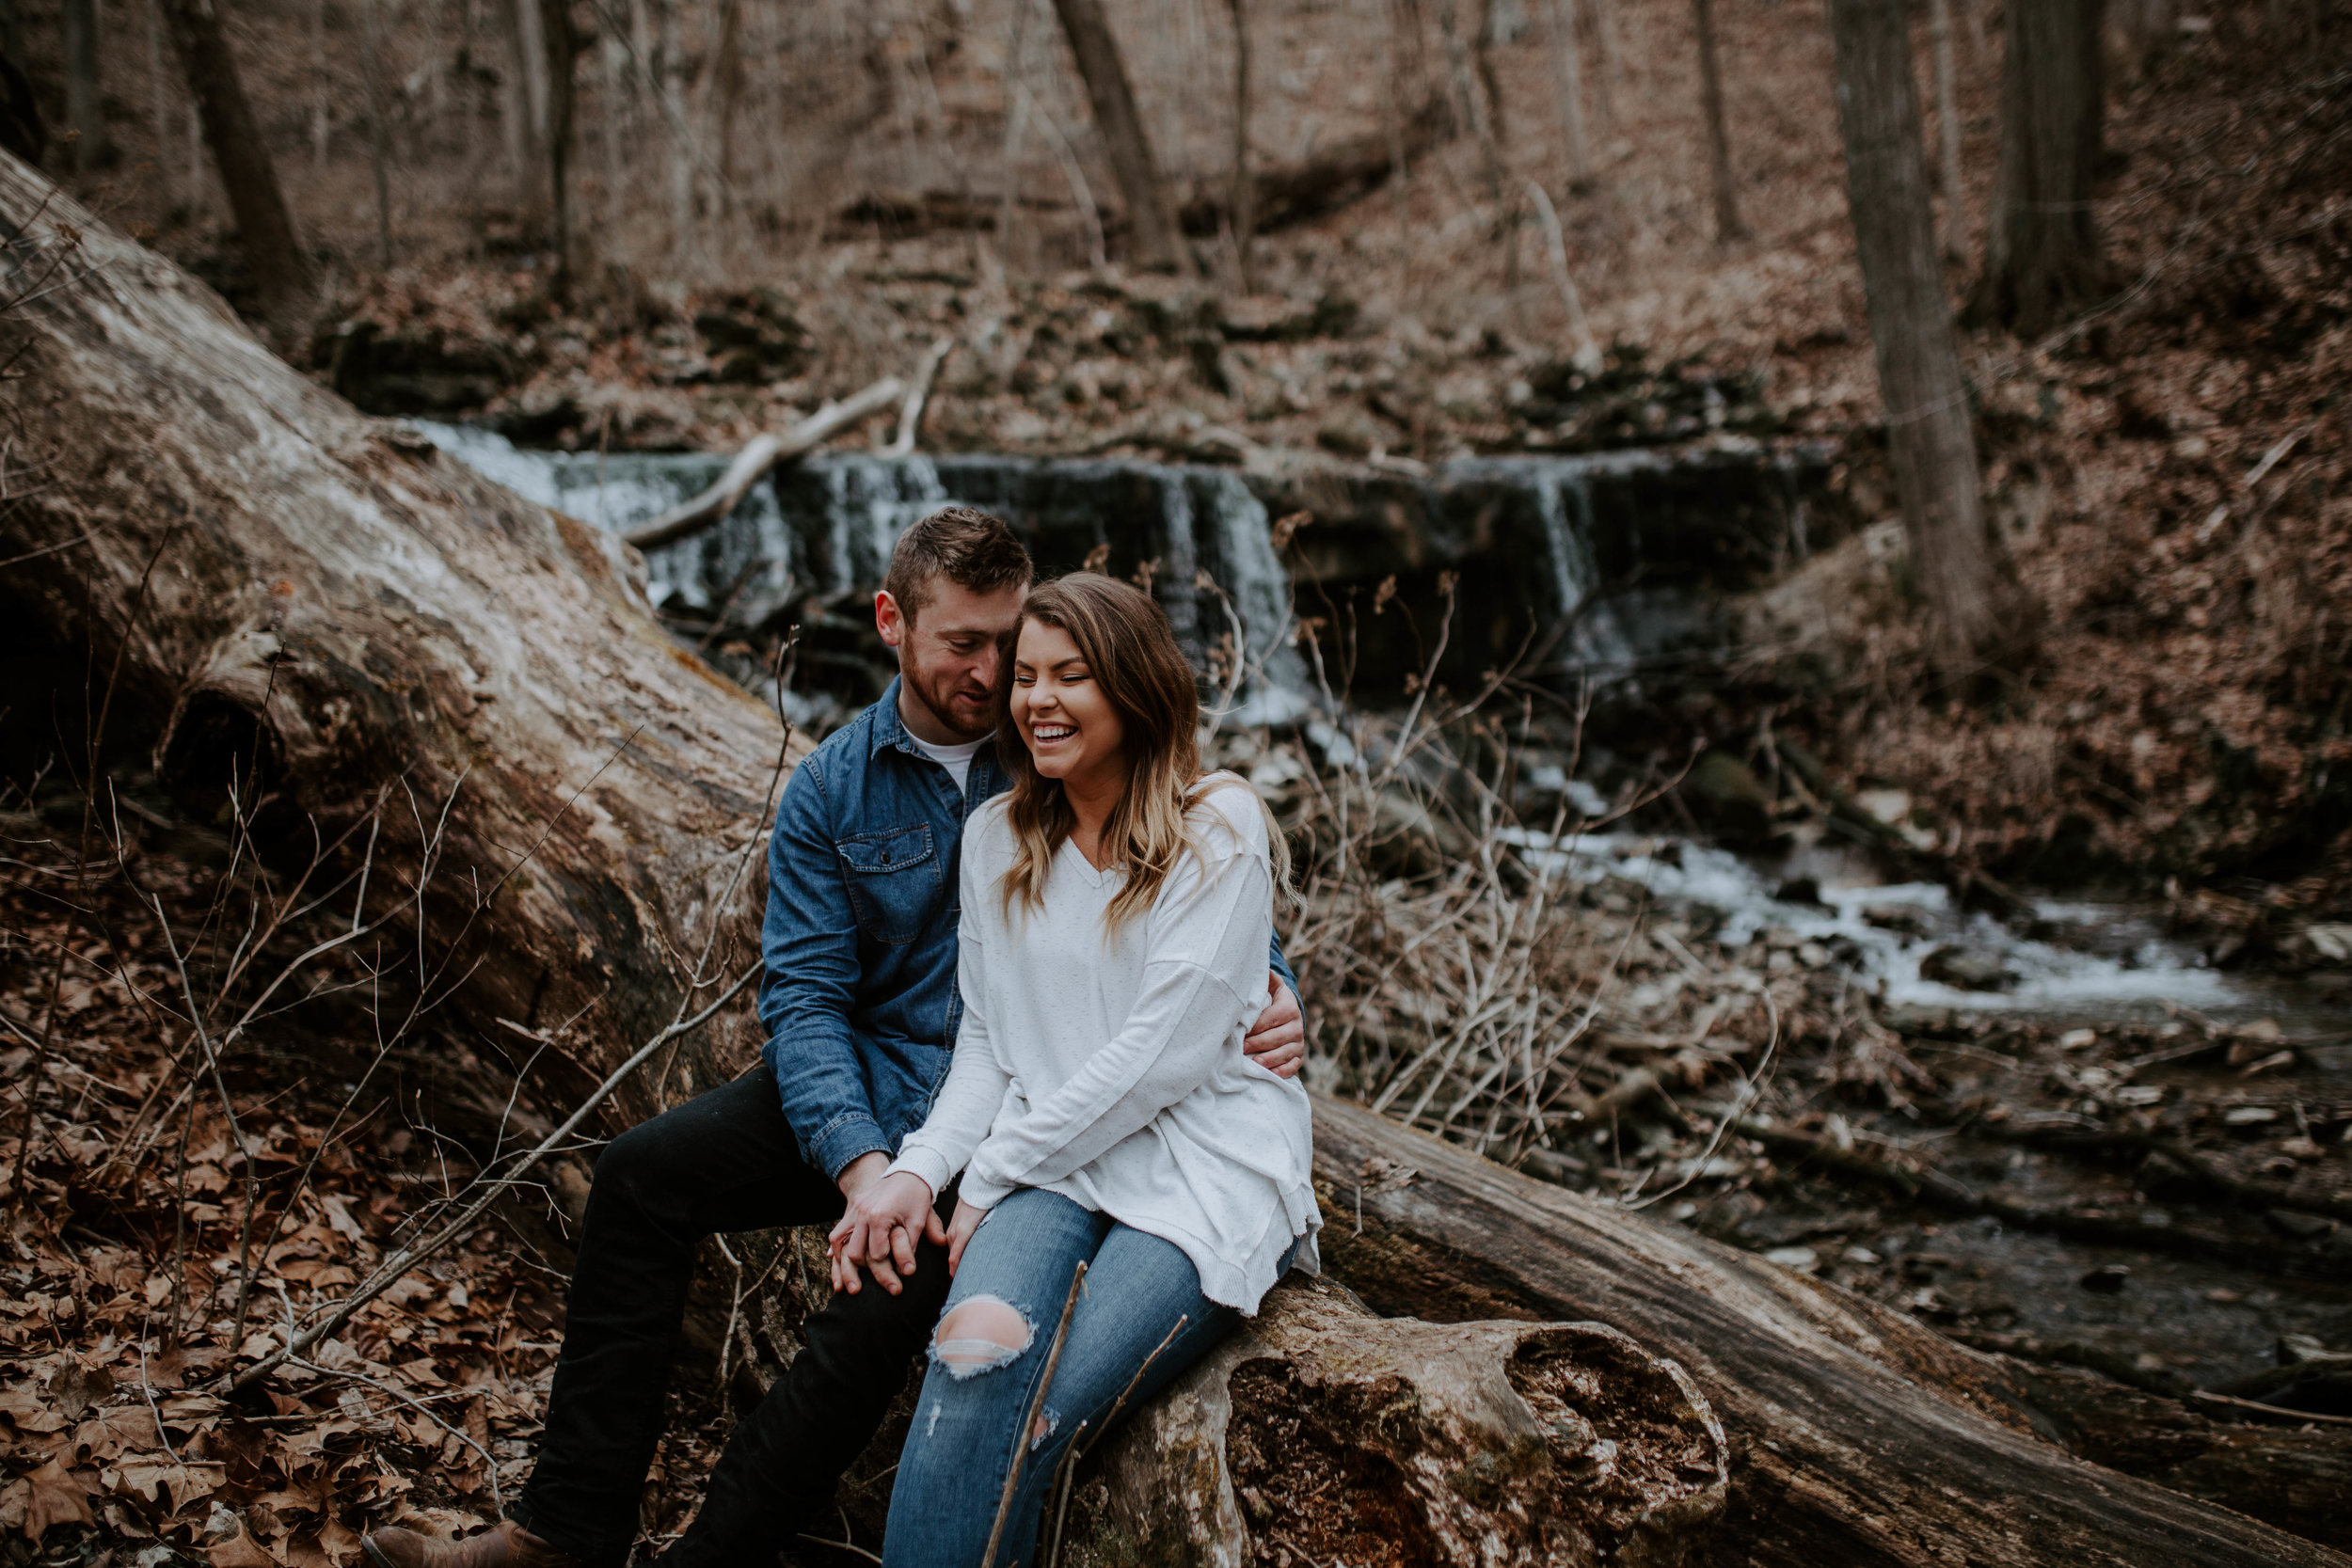 LIZA+EVAN-BLOOMINGTON-COUPLE-ENGAGEMENT-REAGANLYNNPHOTOGRAPHY-MUNCIE-INDIANAPOLIS-8.jpg